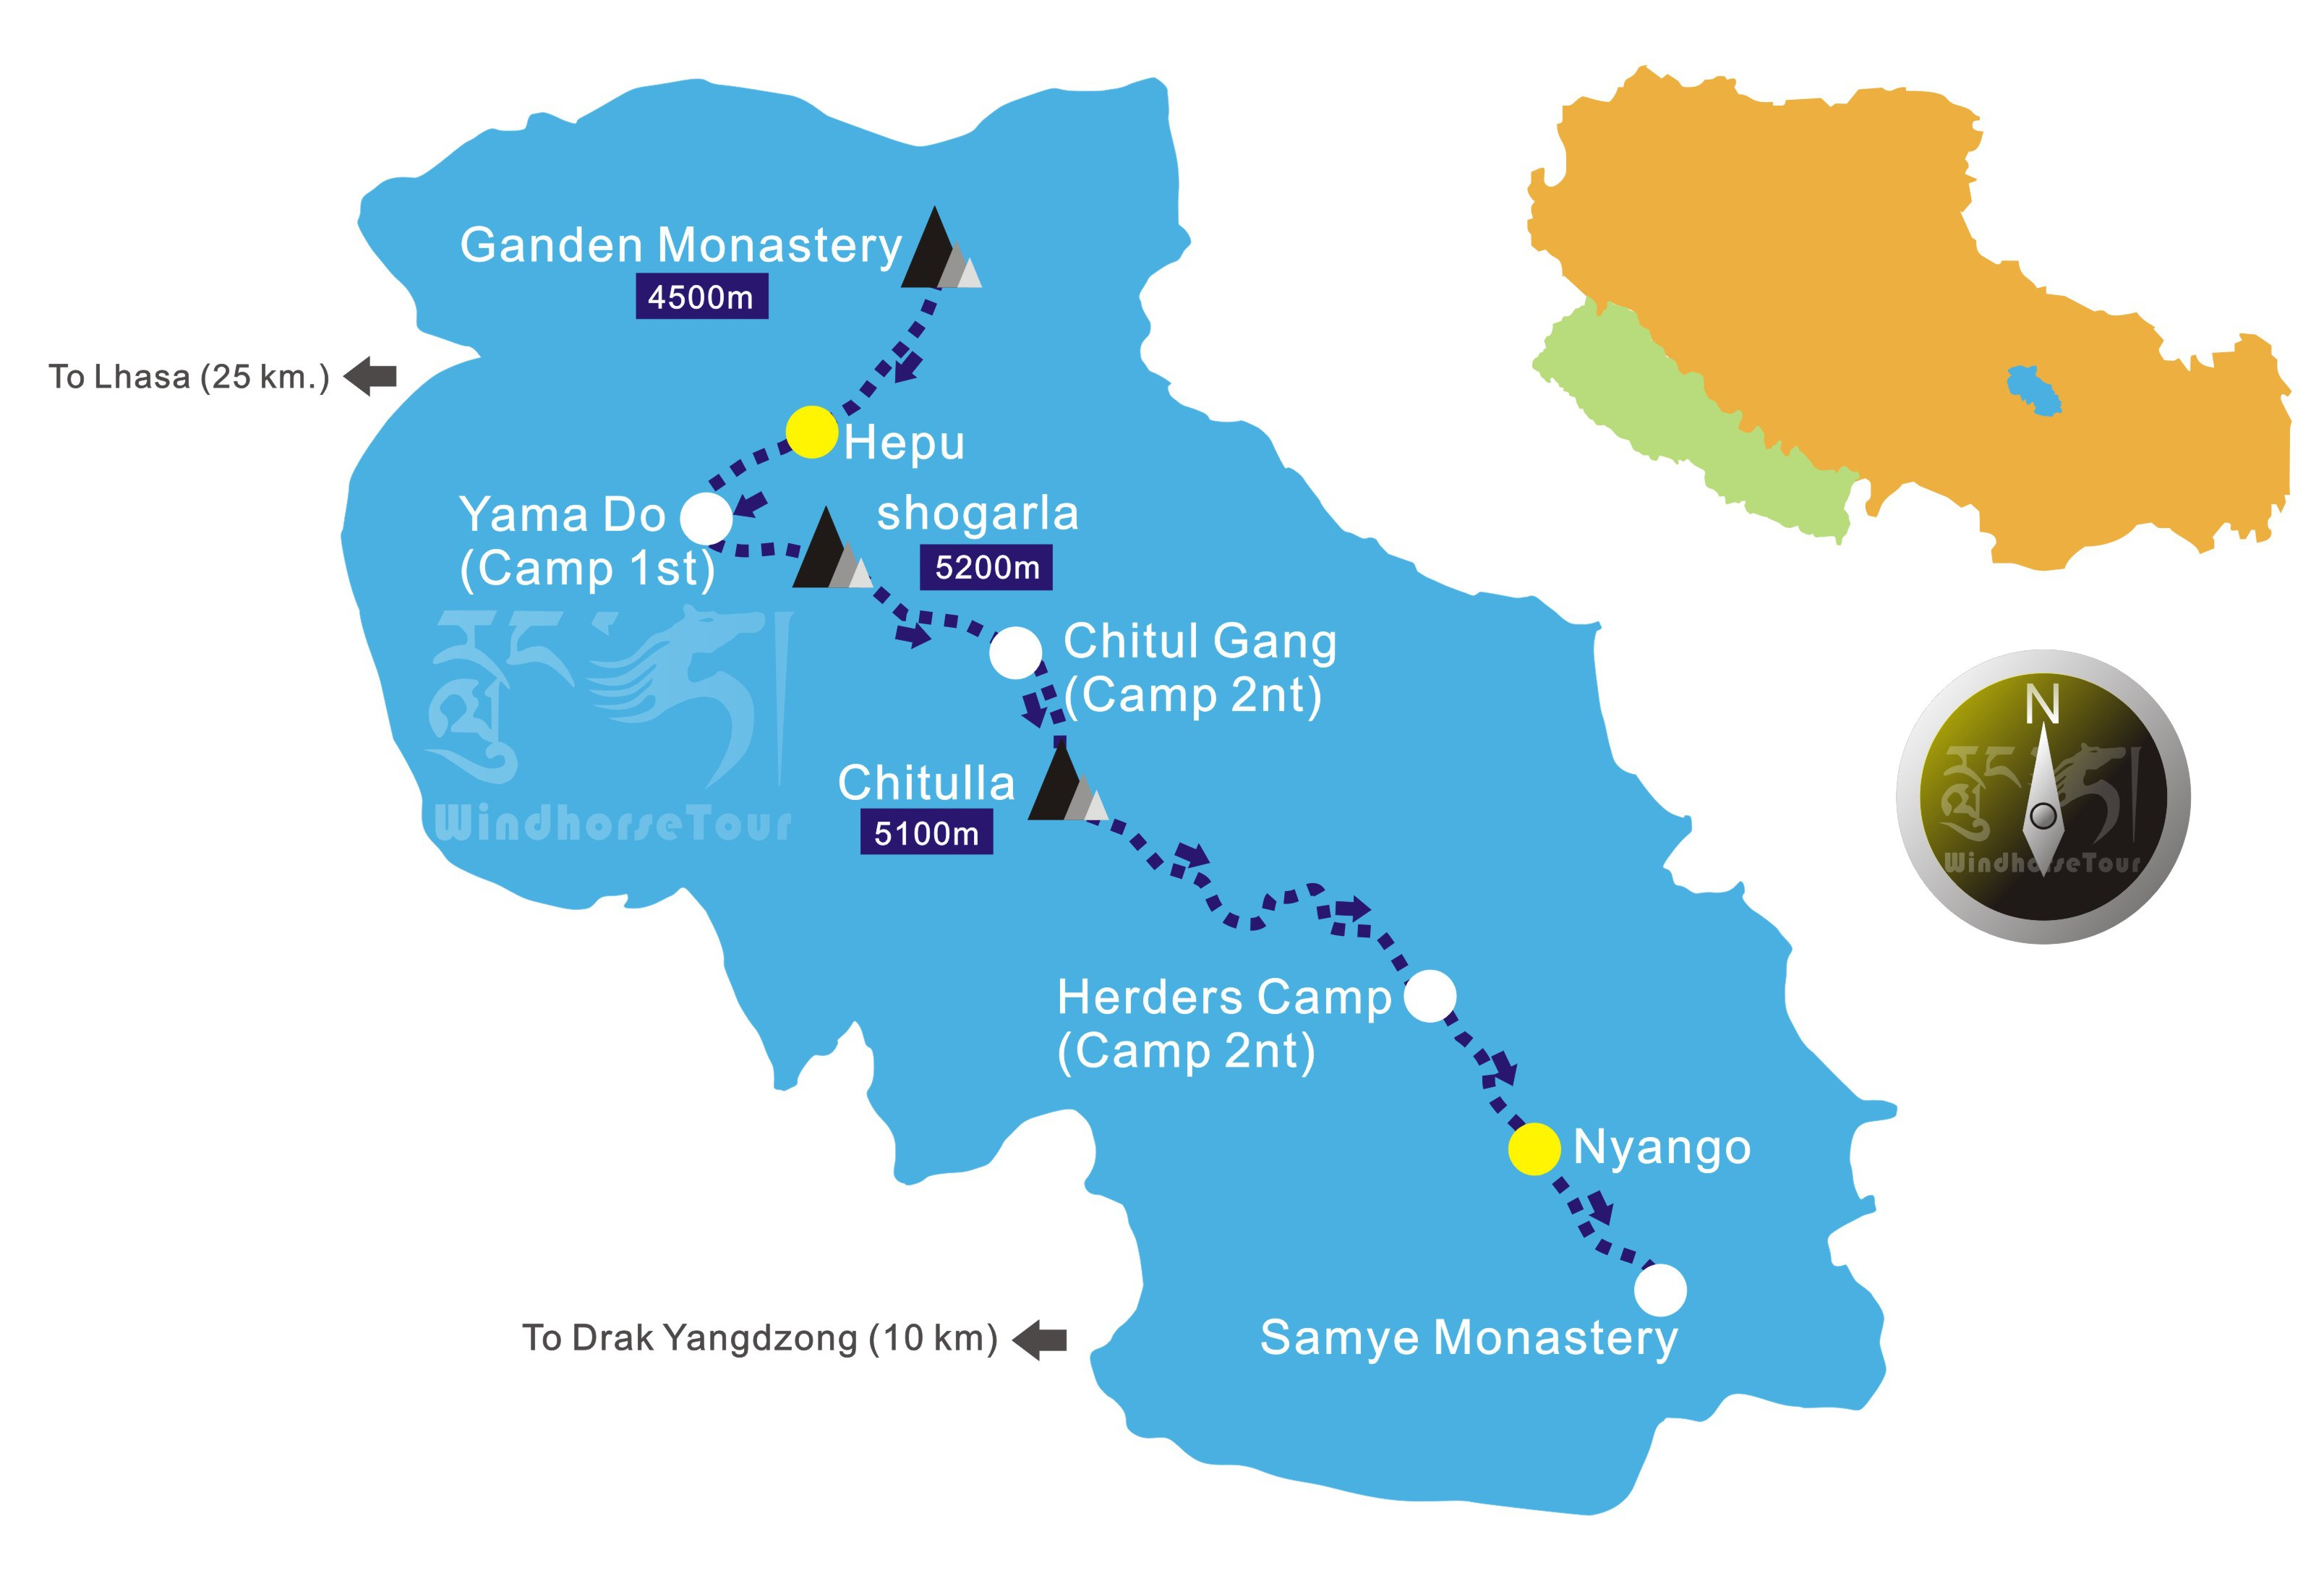 Map of Ganden to Samye trekking in Tibet.